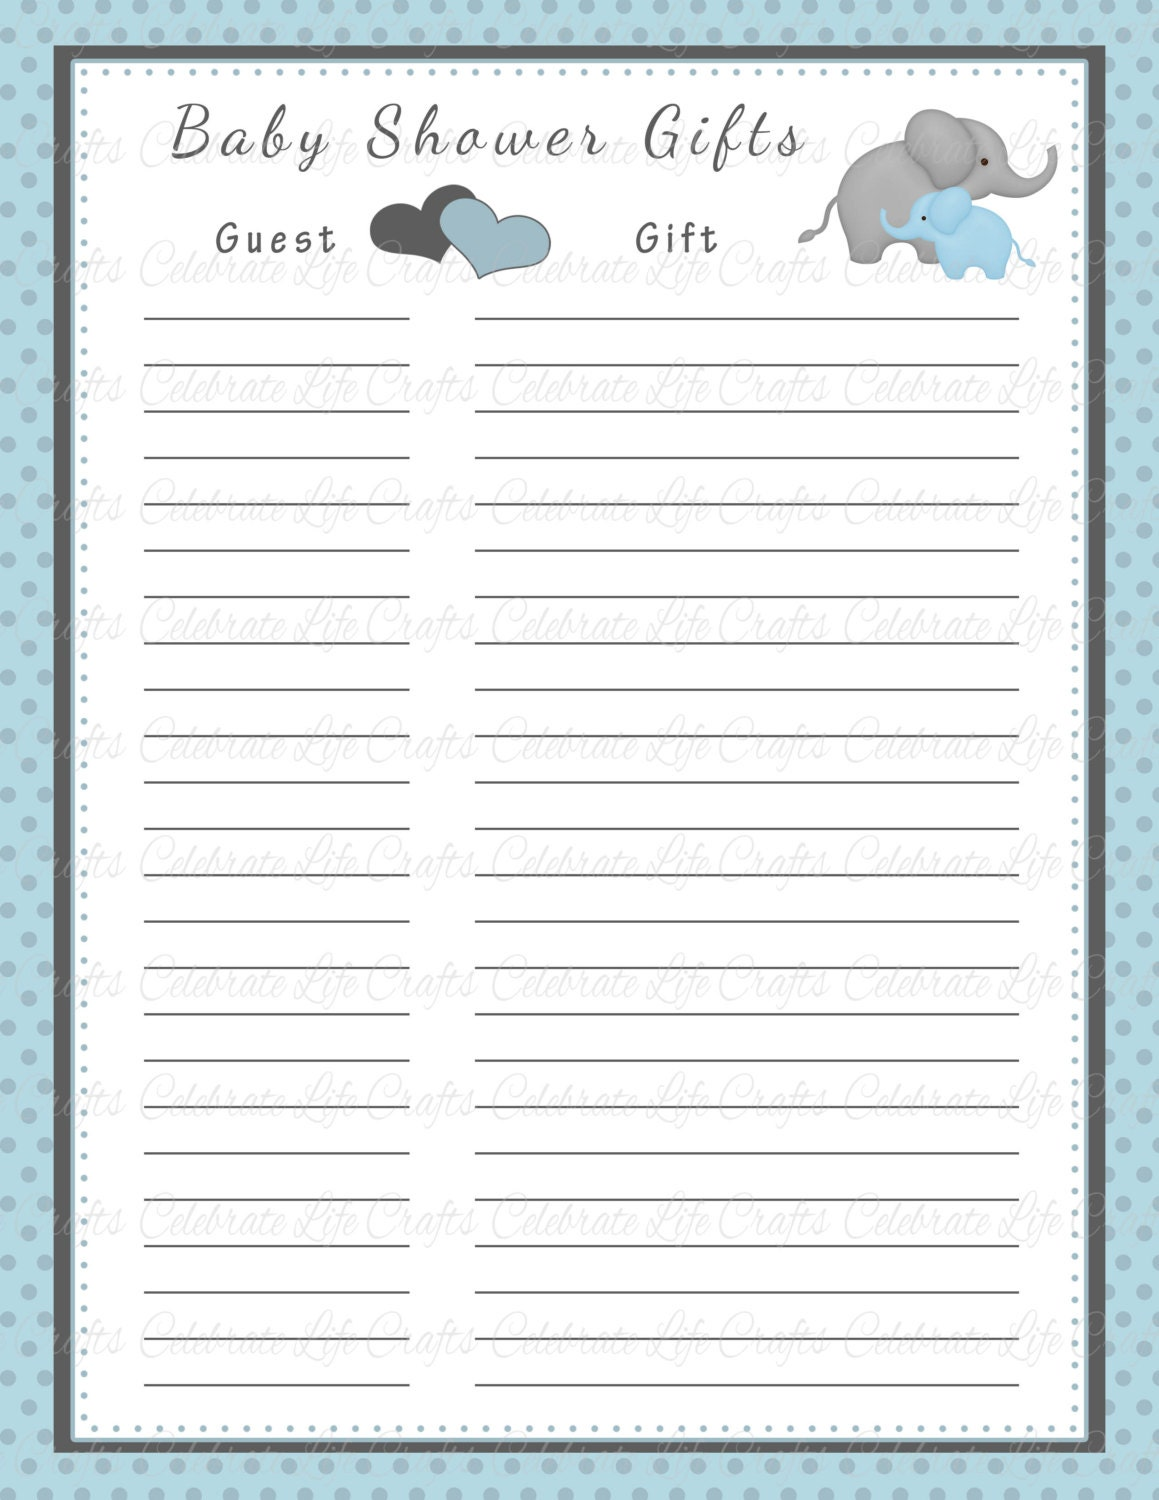 Free Printable Baby Shower Guest List Baby Shower Gift List Printable Baby Shower Party